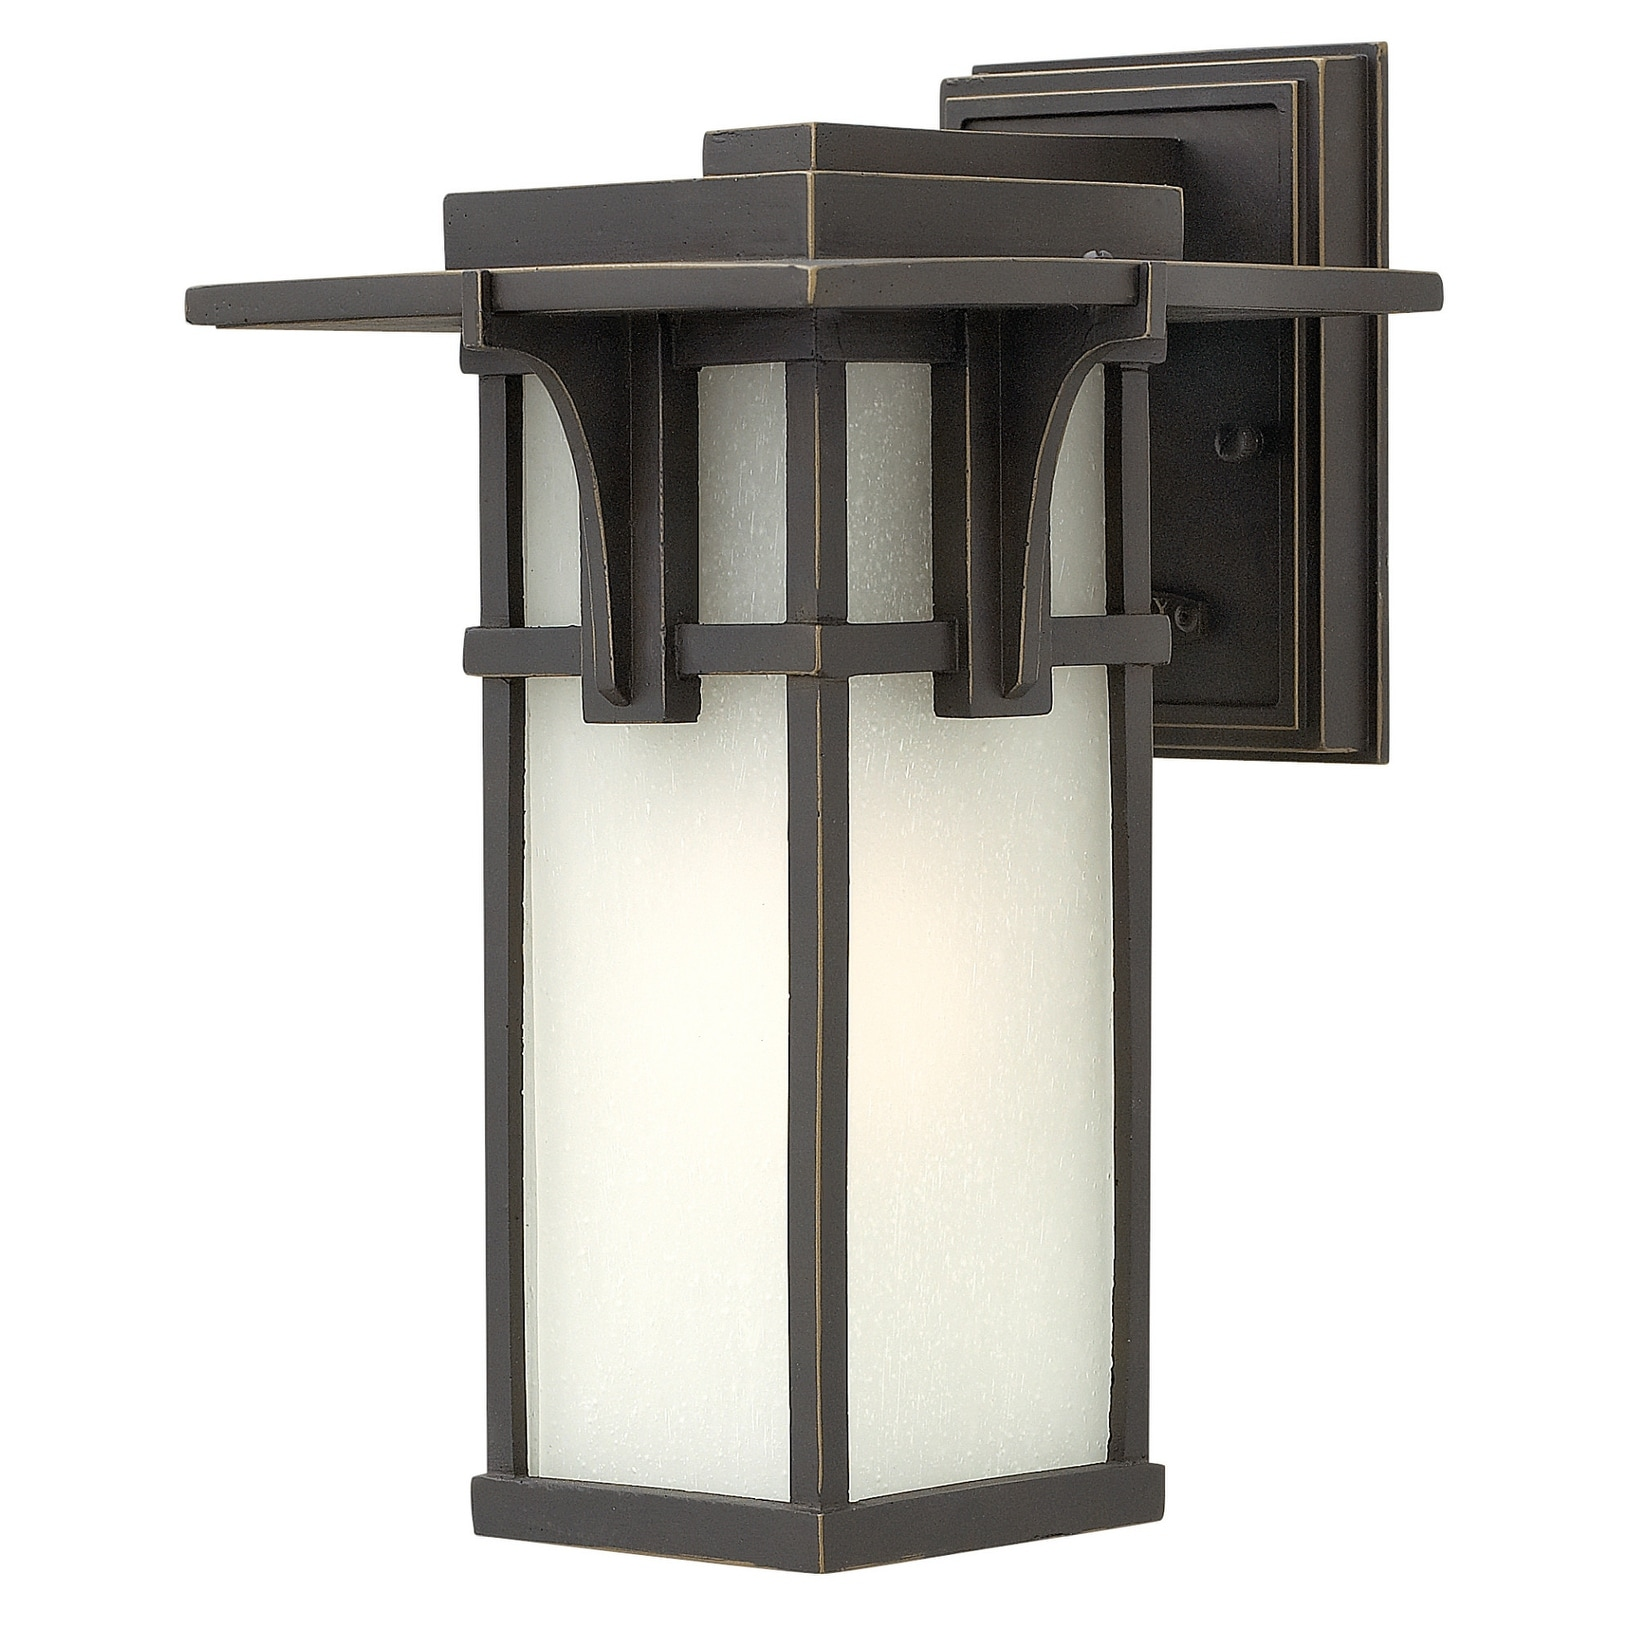 Hinkley Lighting 2230 Led 11 75 Height Outdoor Lantern Wall Sconce From The Manhattan Collection